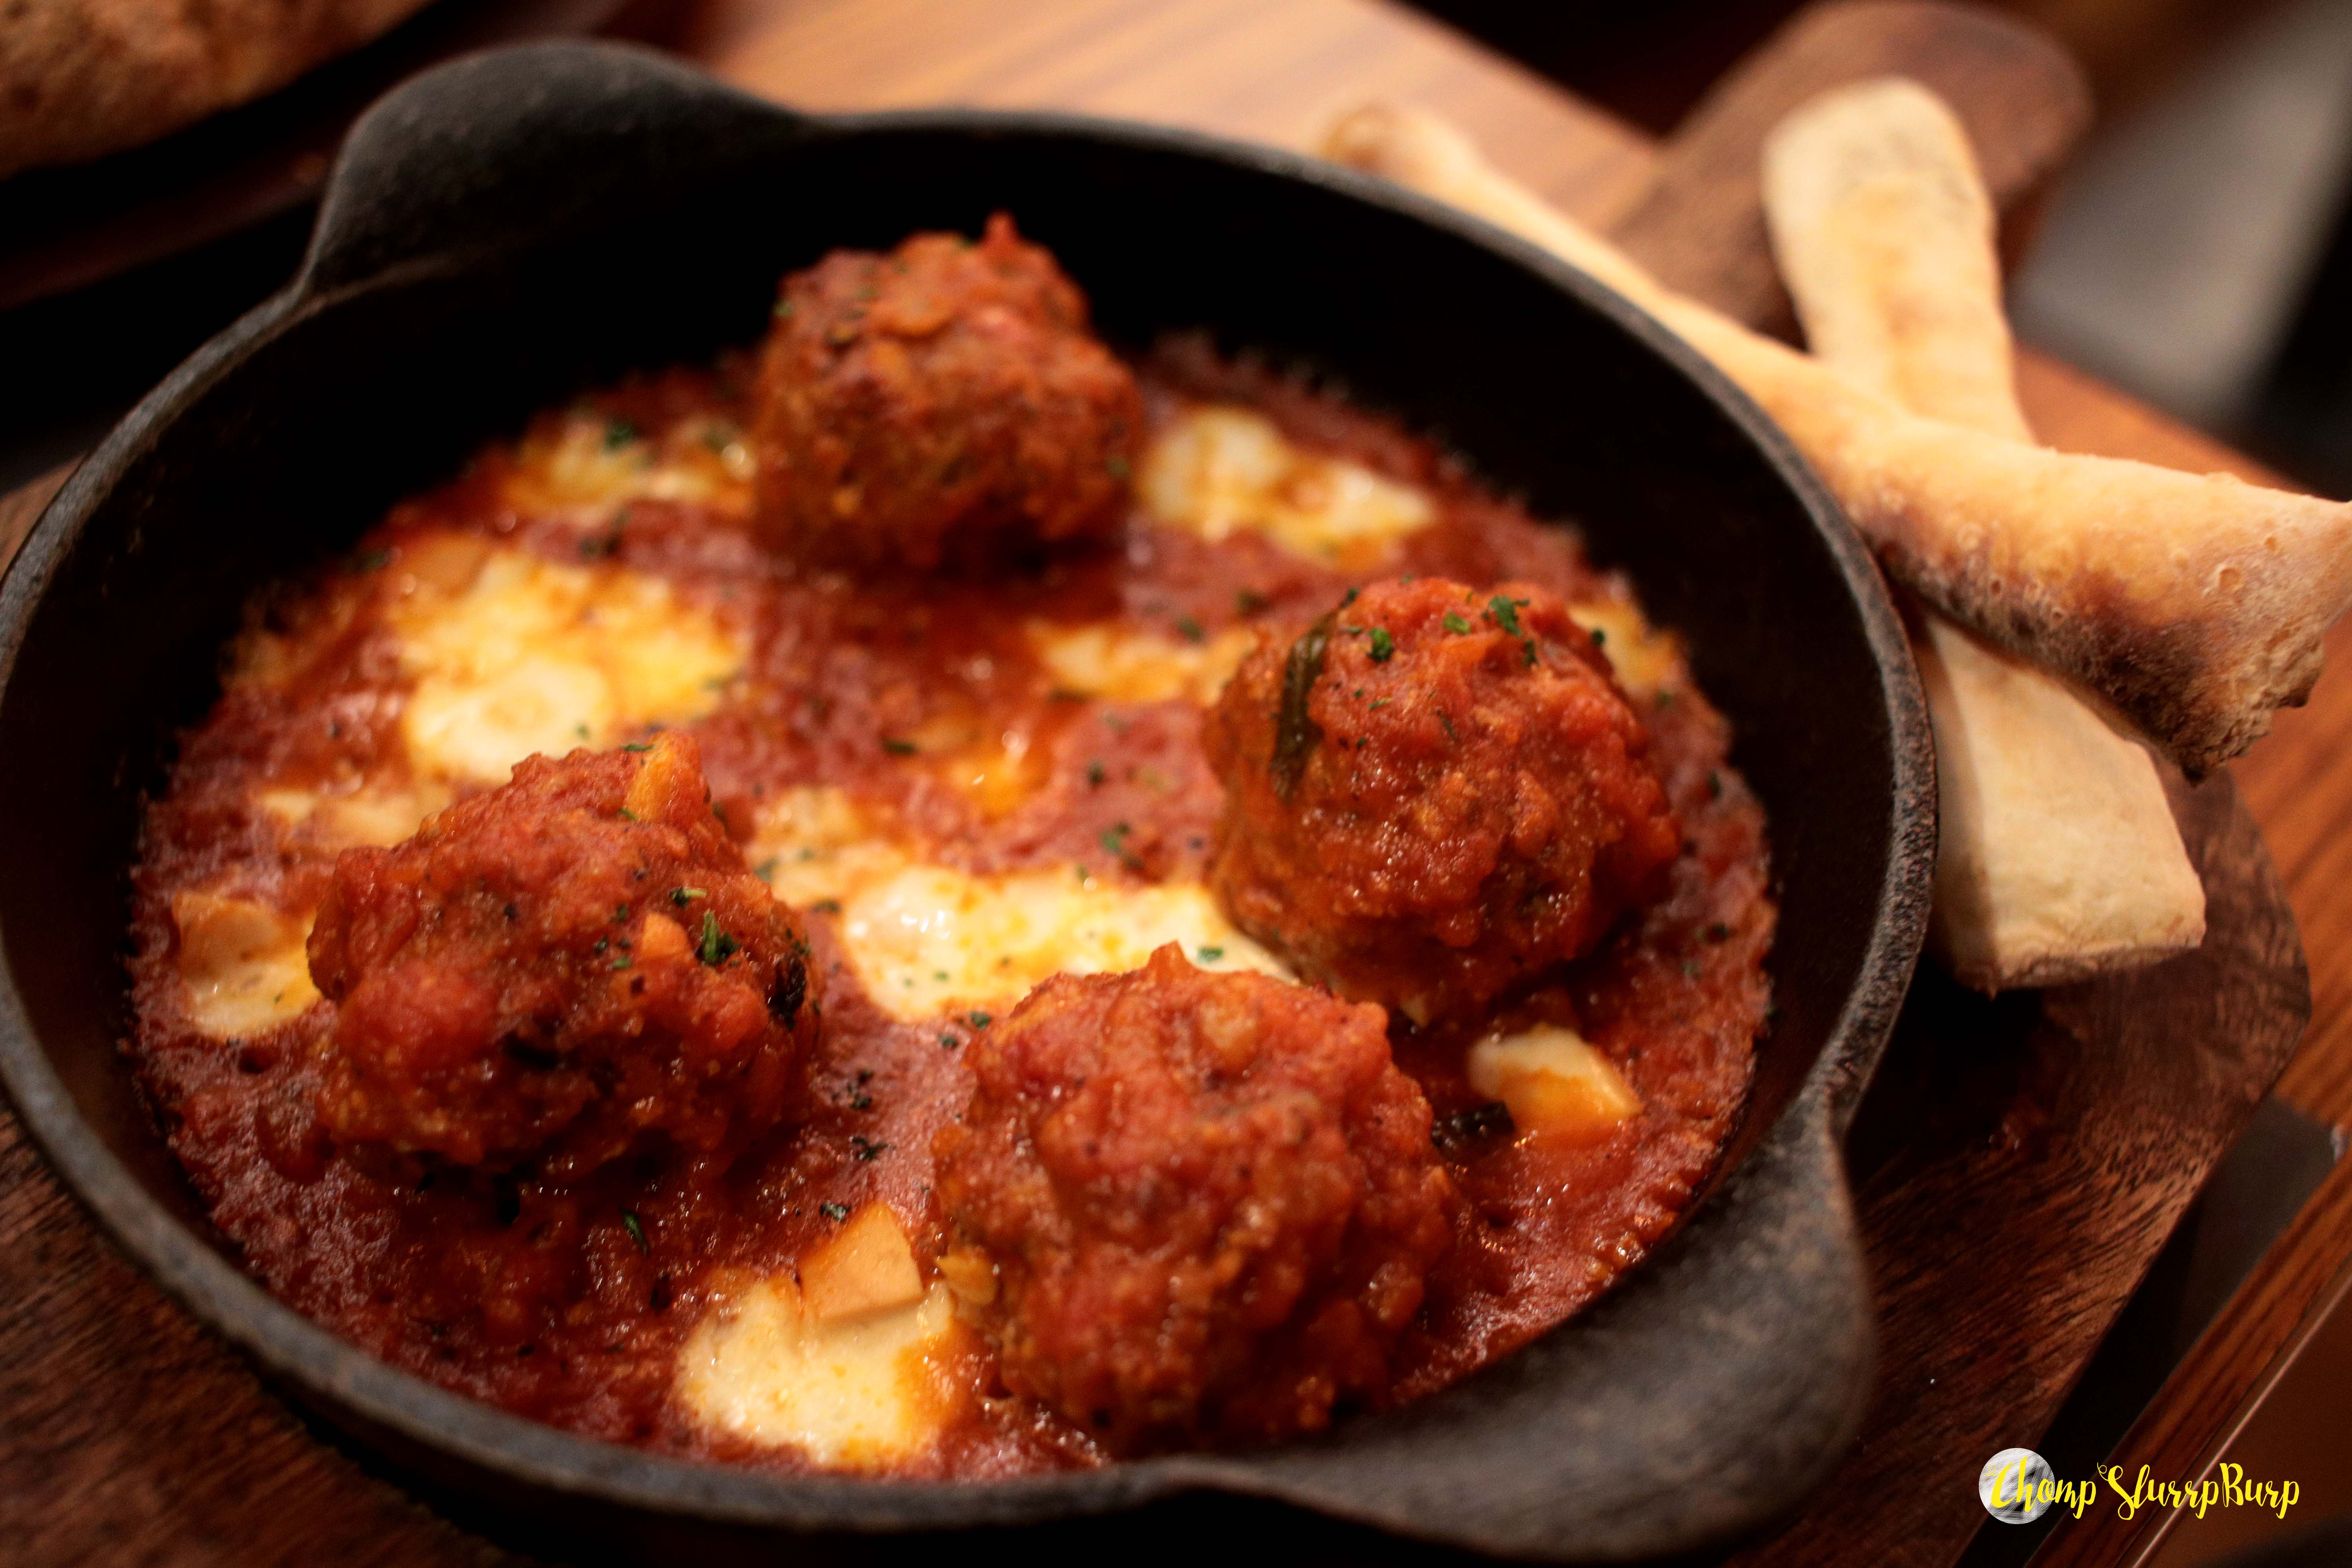 Meatball skillet at Evoo